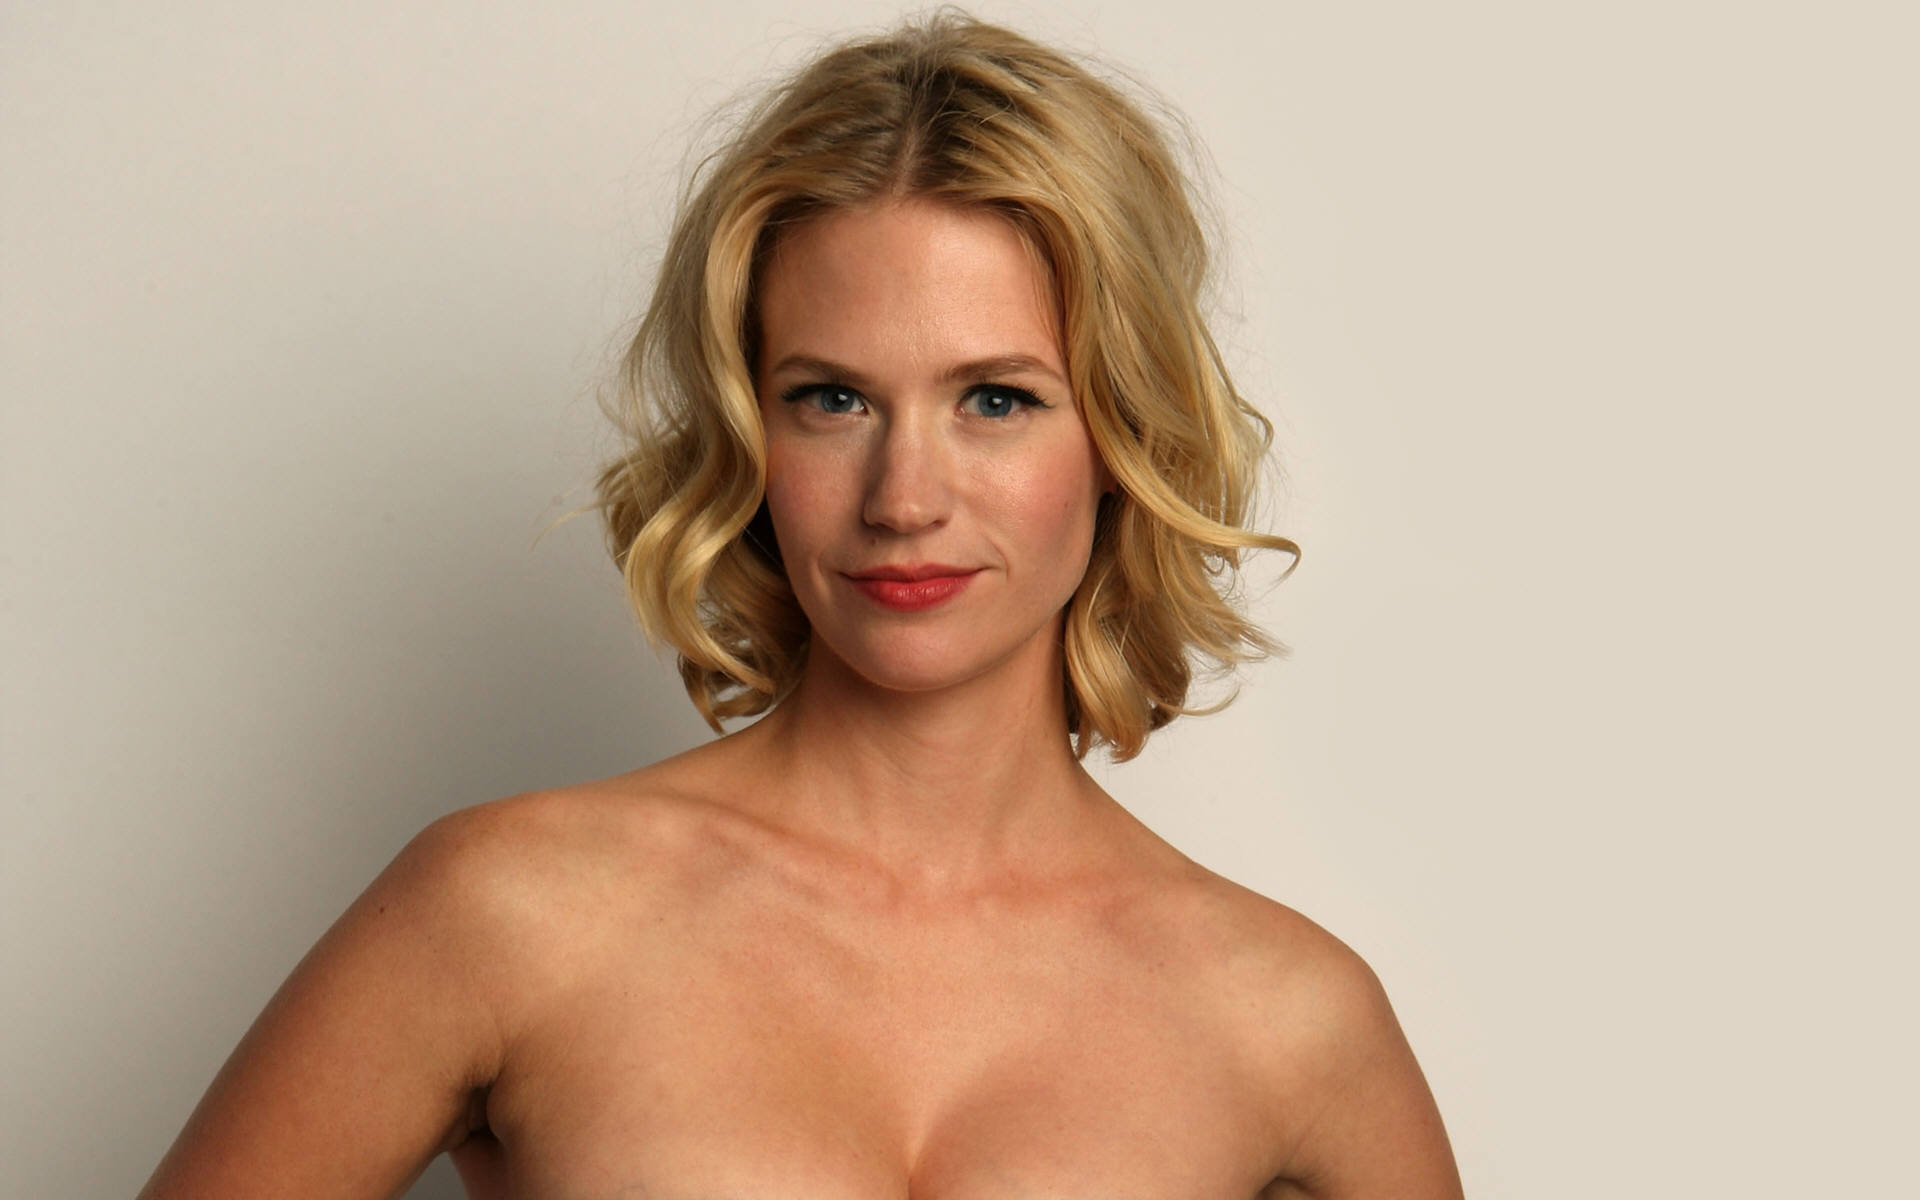 January Jones HD Wallpapers Free Download